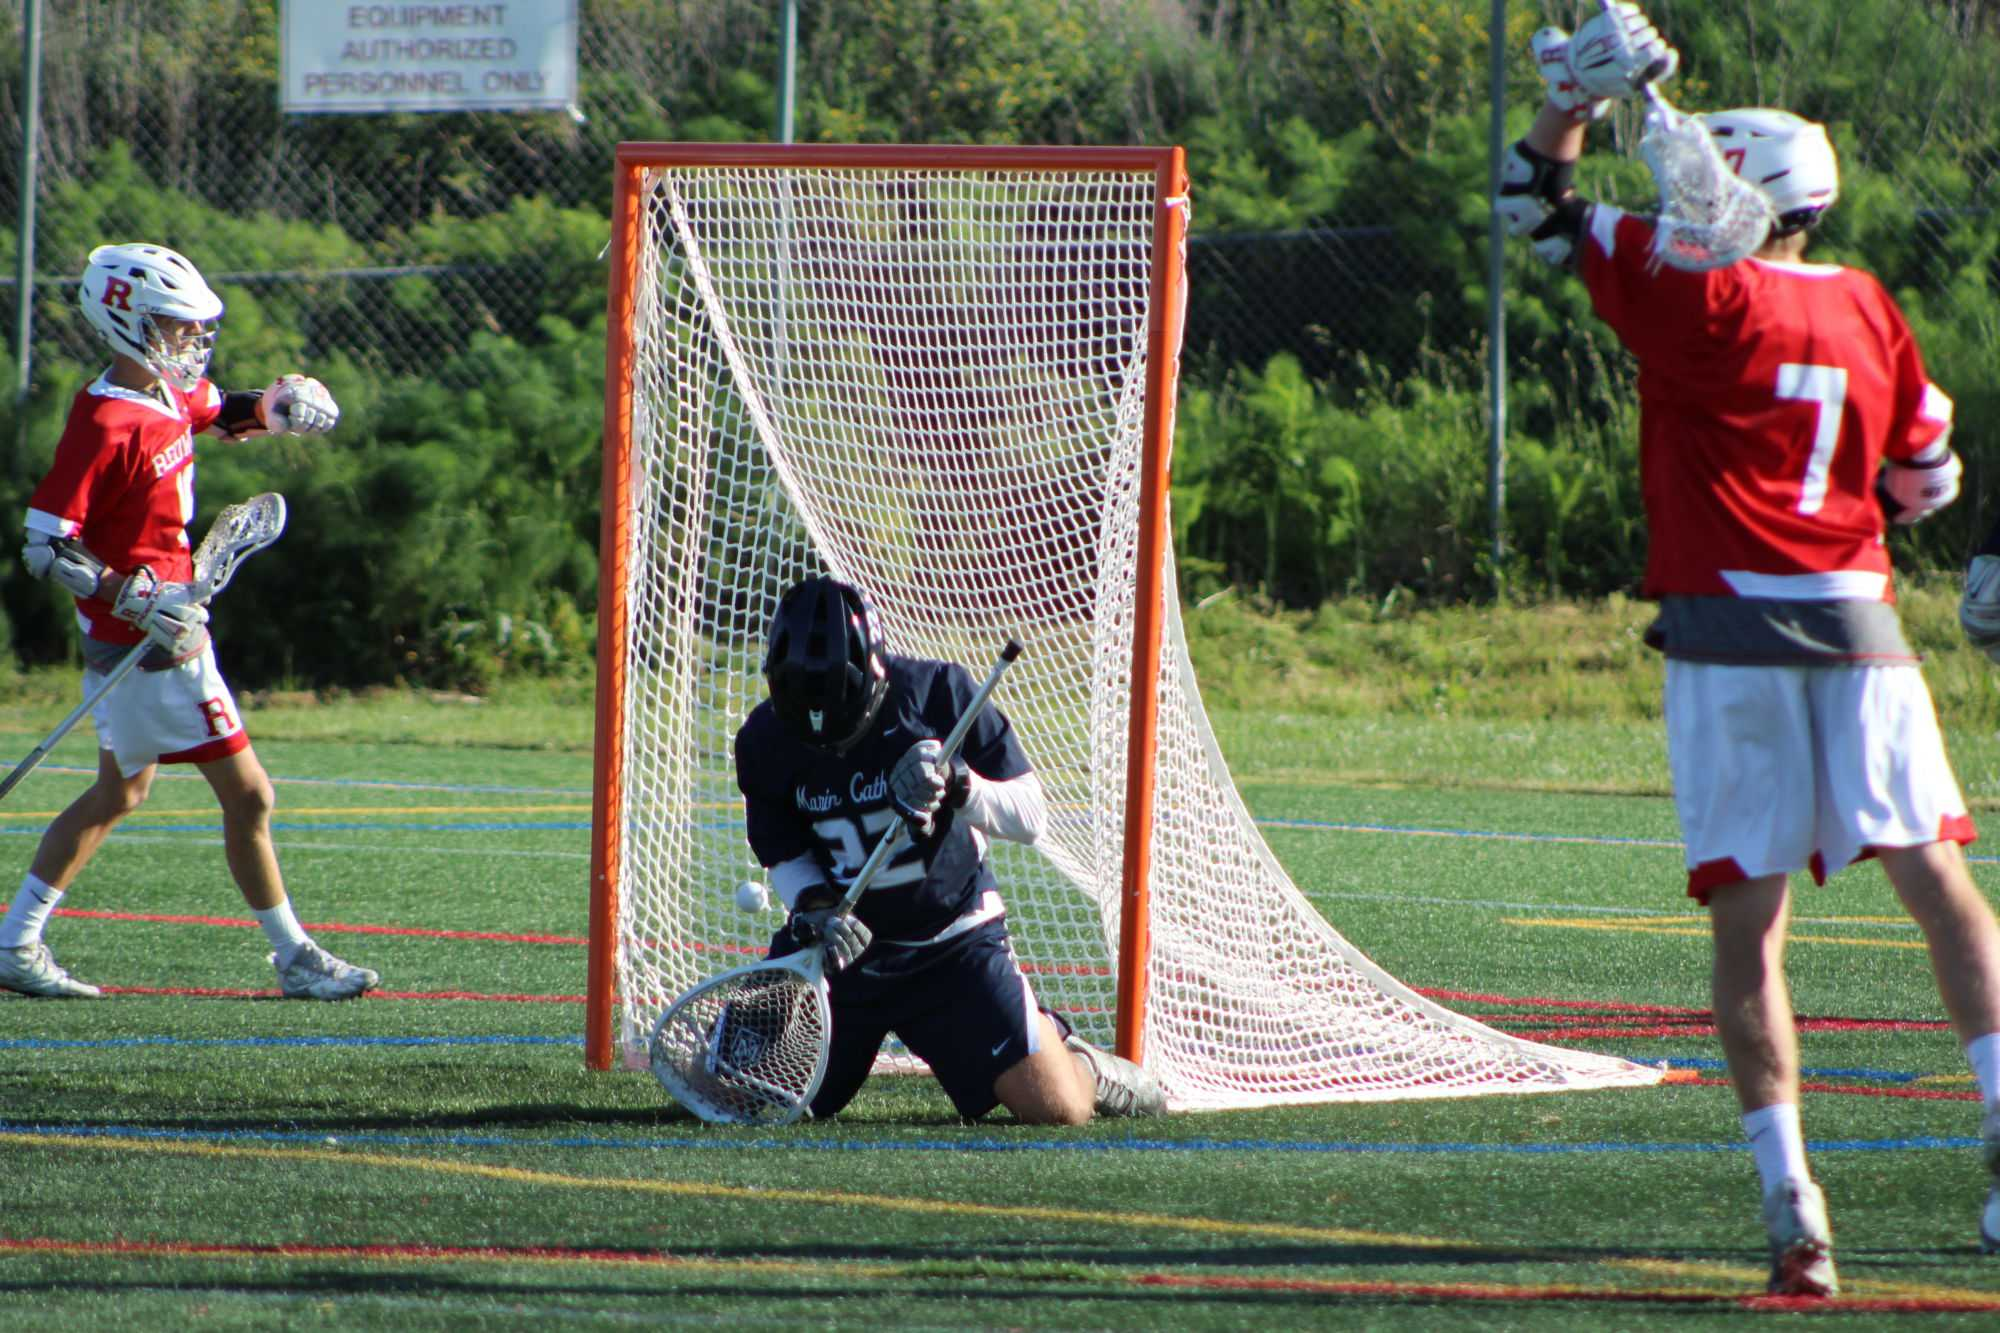 Marin+Catholic%27s+goalie+looks+down+as+the+ball+goes+past+him%2C+gaining+a+point+for+Redwood.